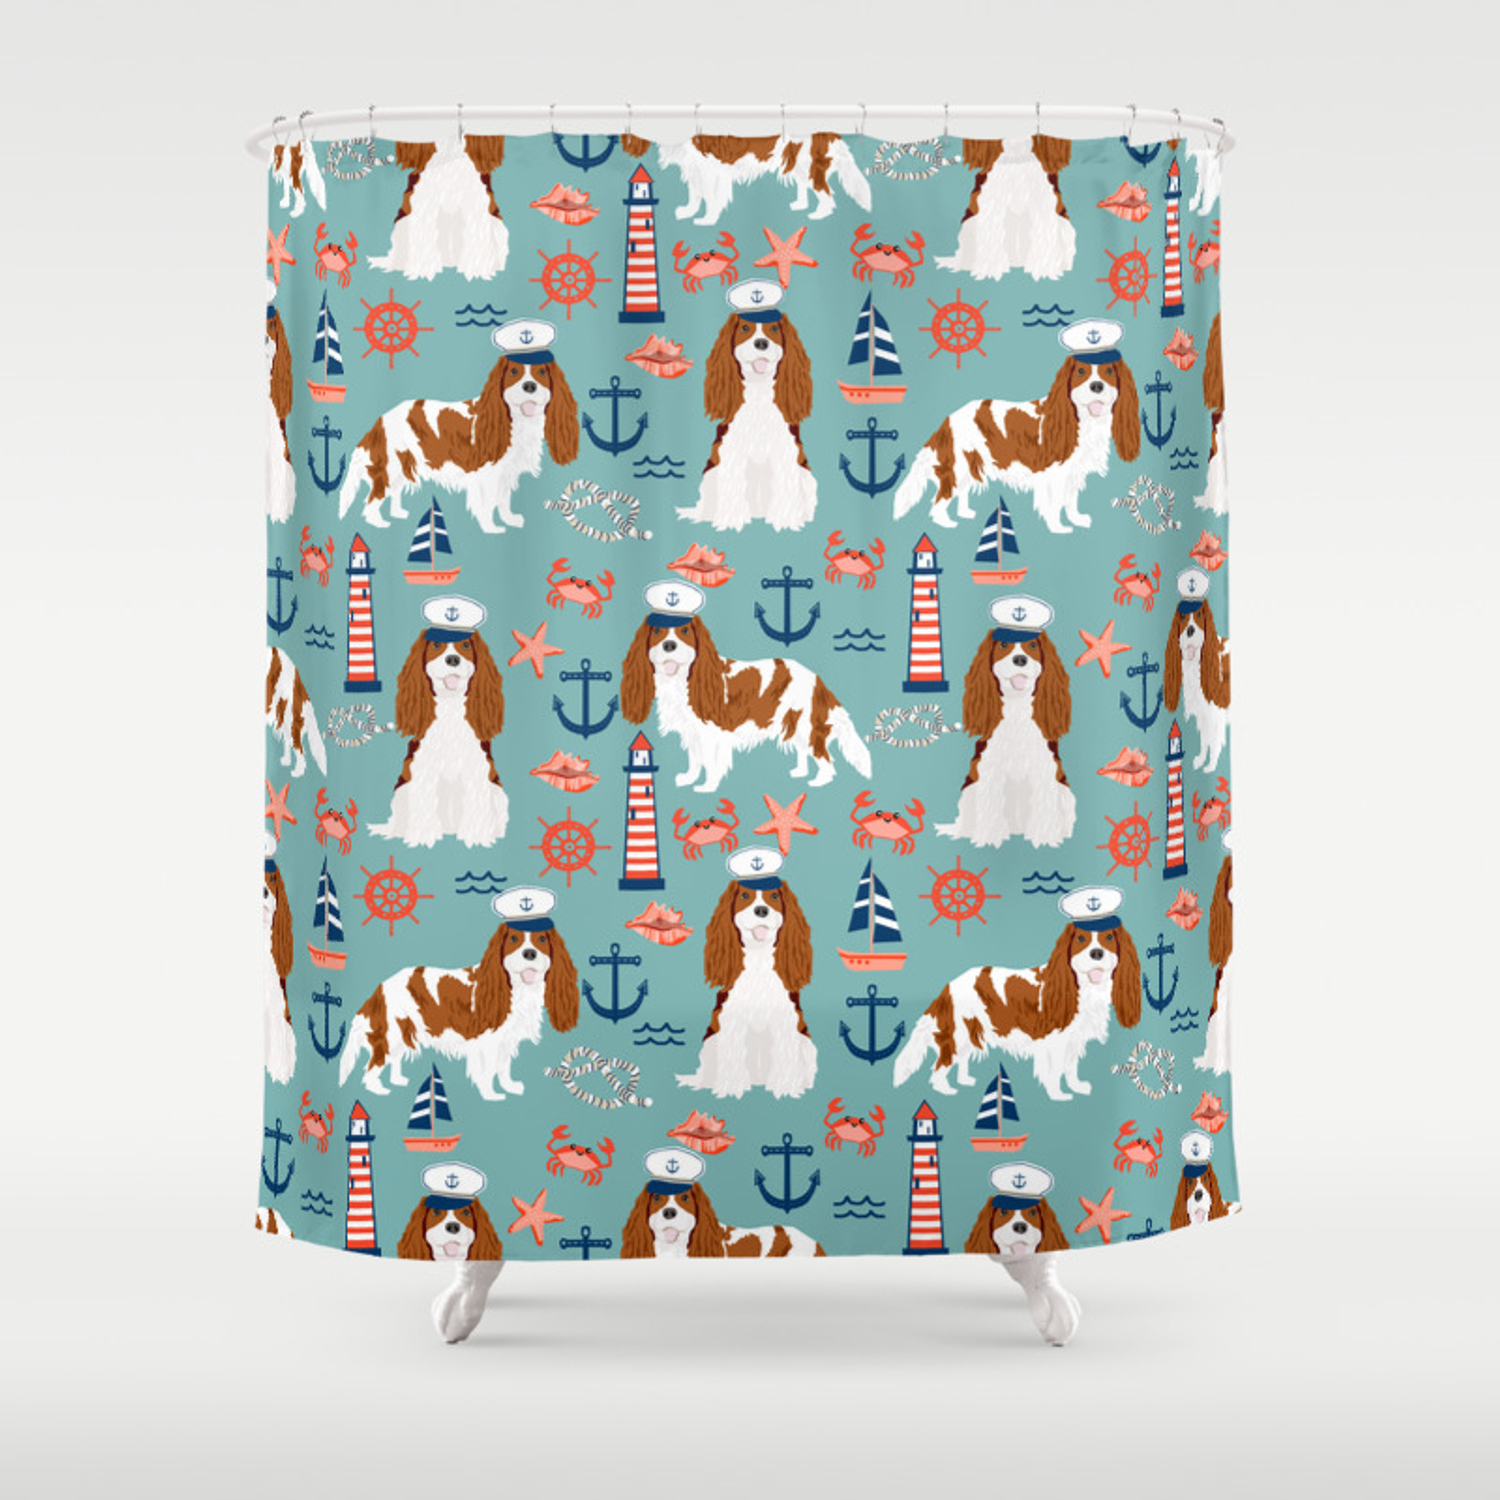 Cavalier King Charles Spaniel Nautical Sailing Lighthouse New England Sailboats Shower Curtain